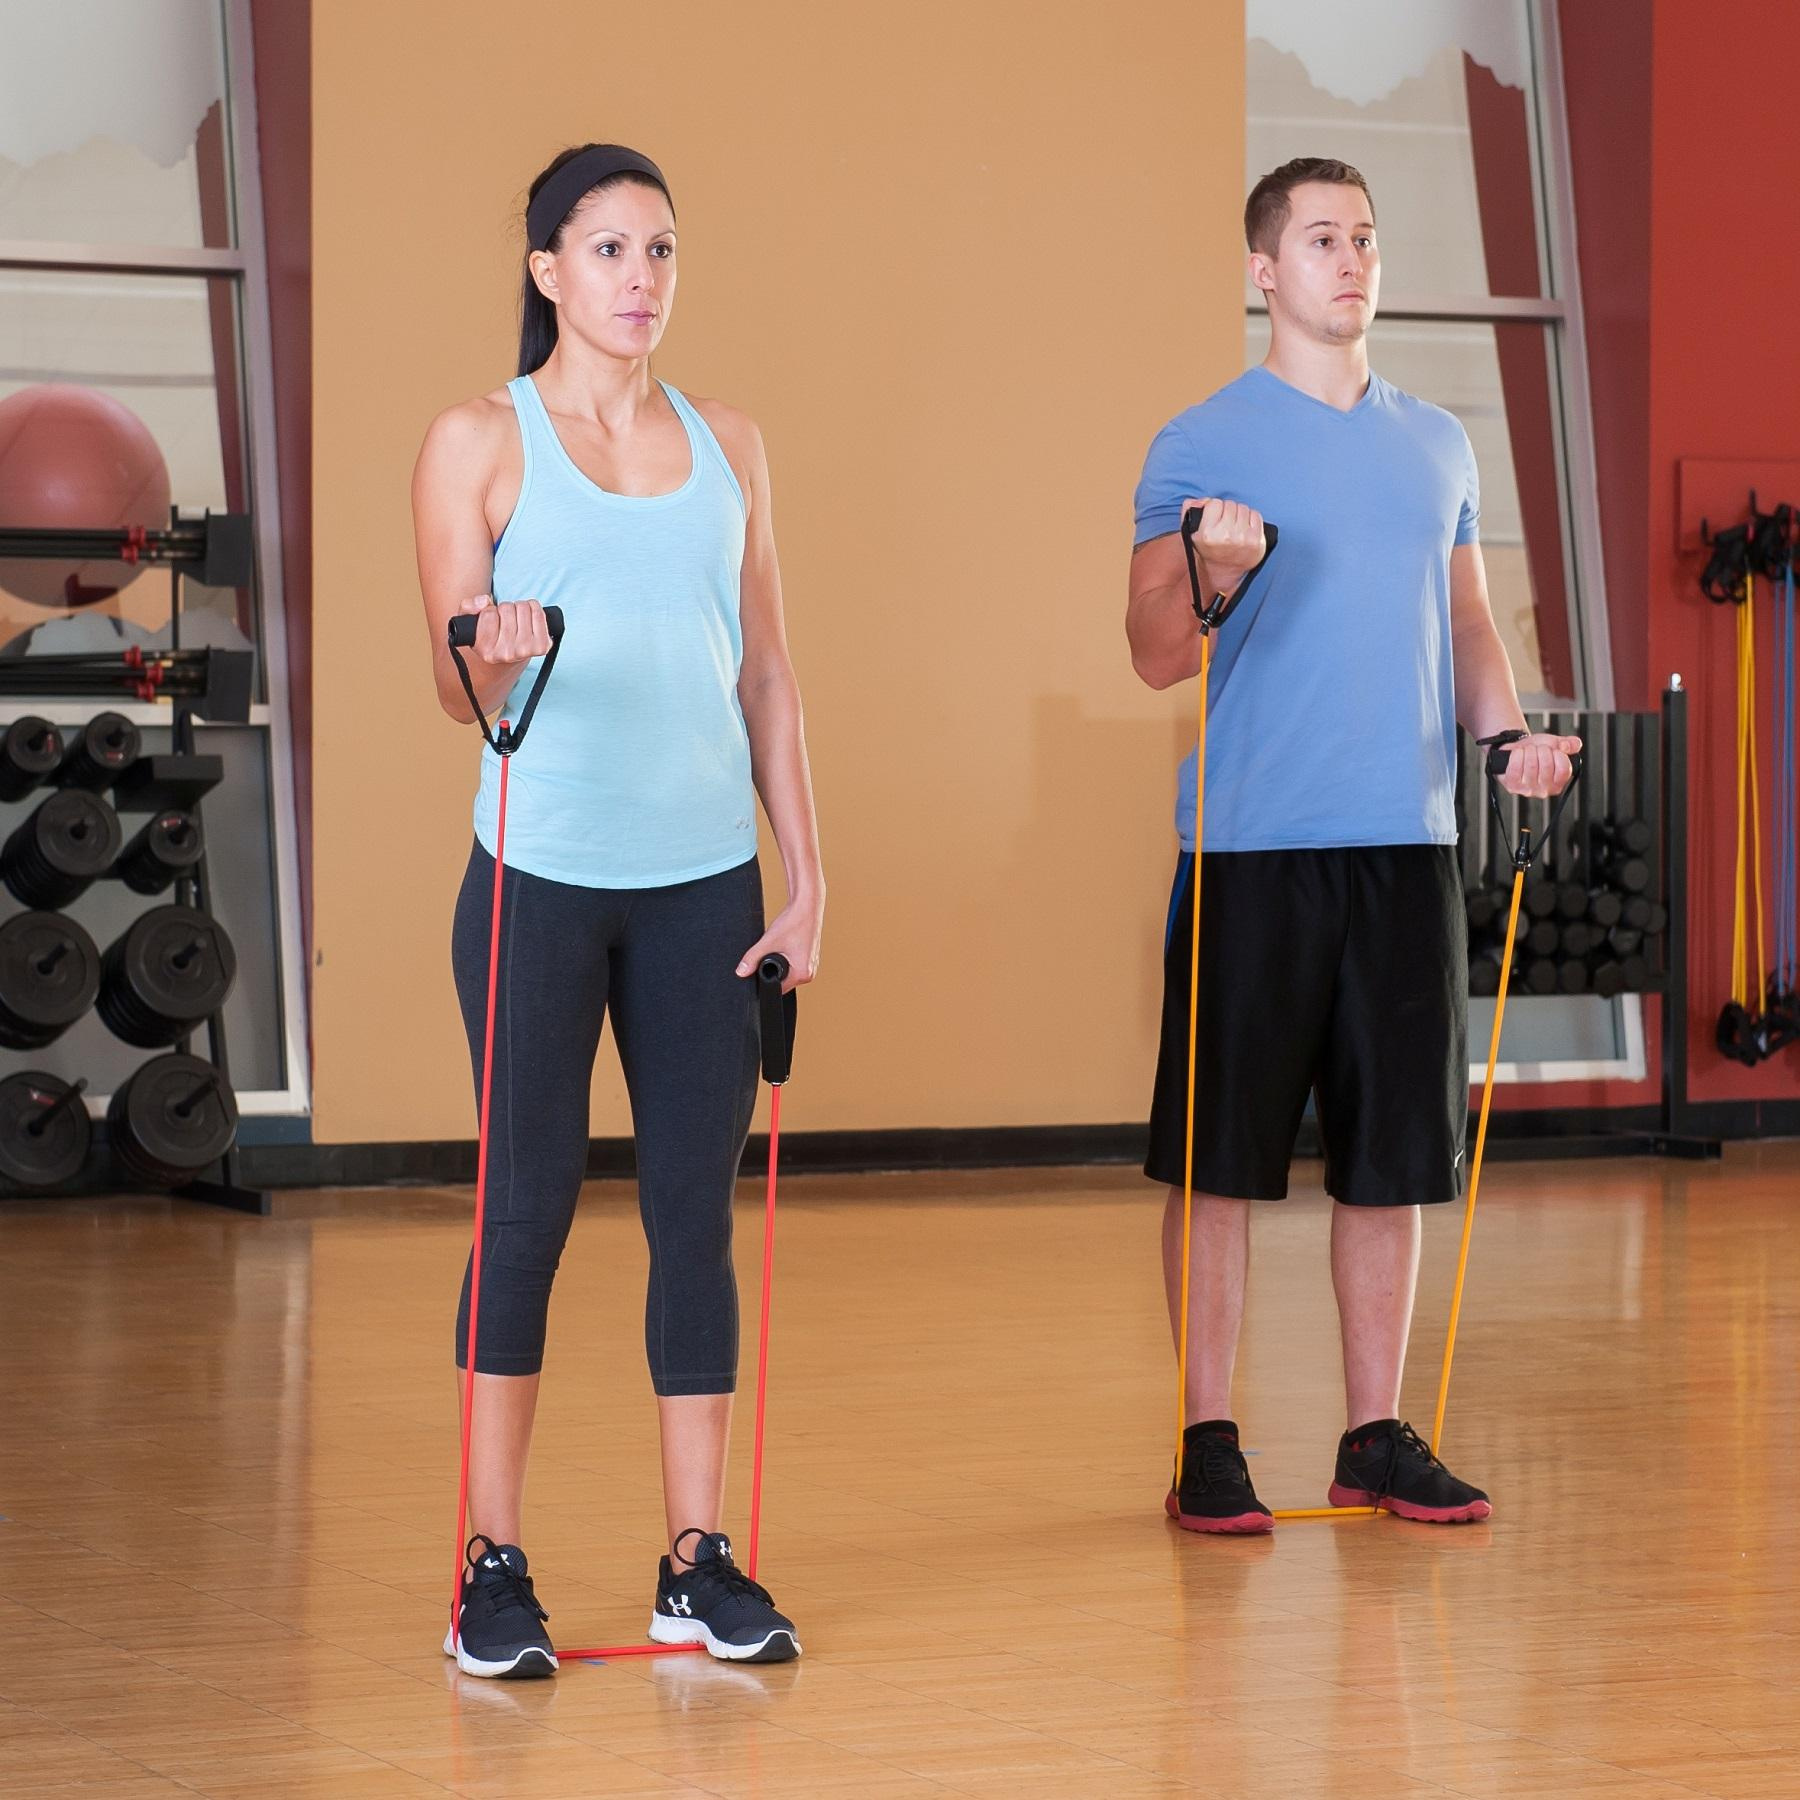 Band Set (Five Bands Included) : Exercise Bands : Sports & Outdoors